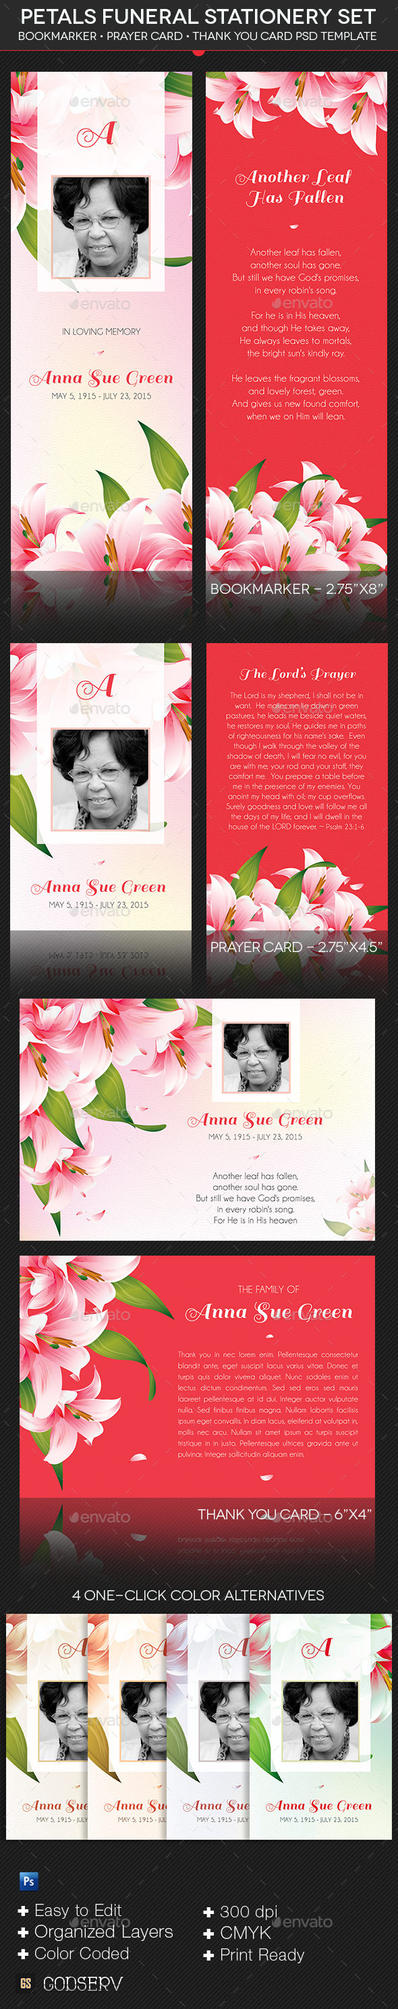 Petals Funeral Stationery Template by Godserv